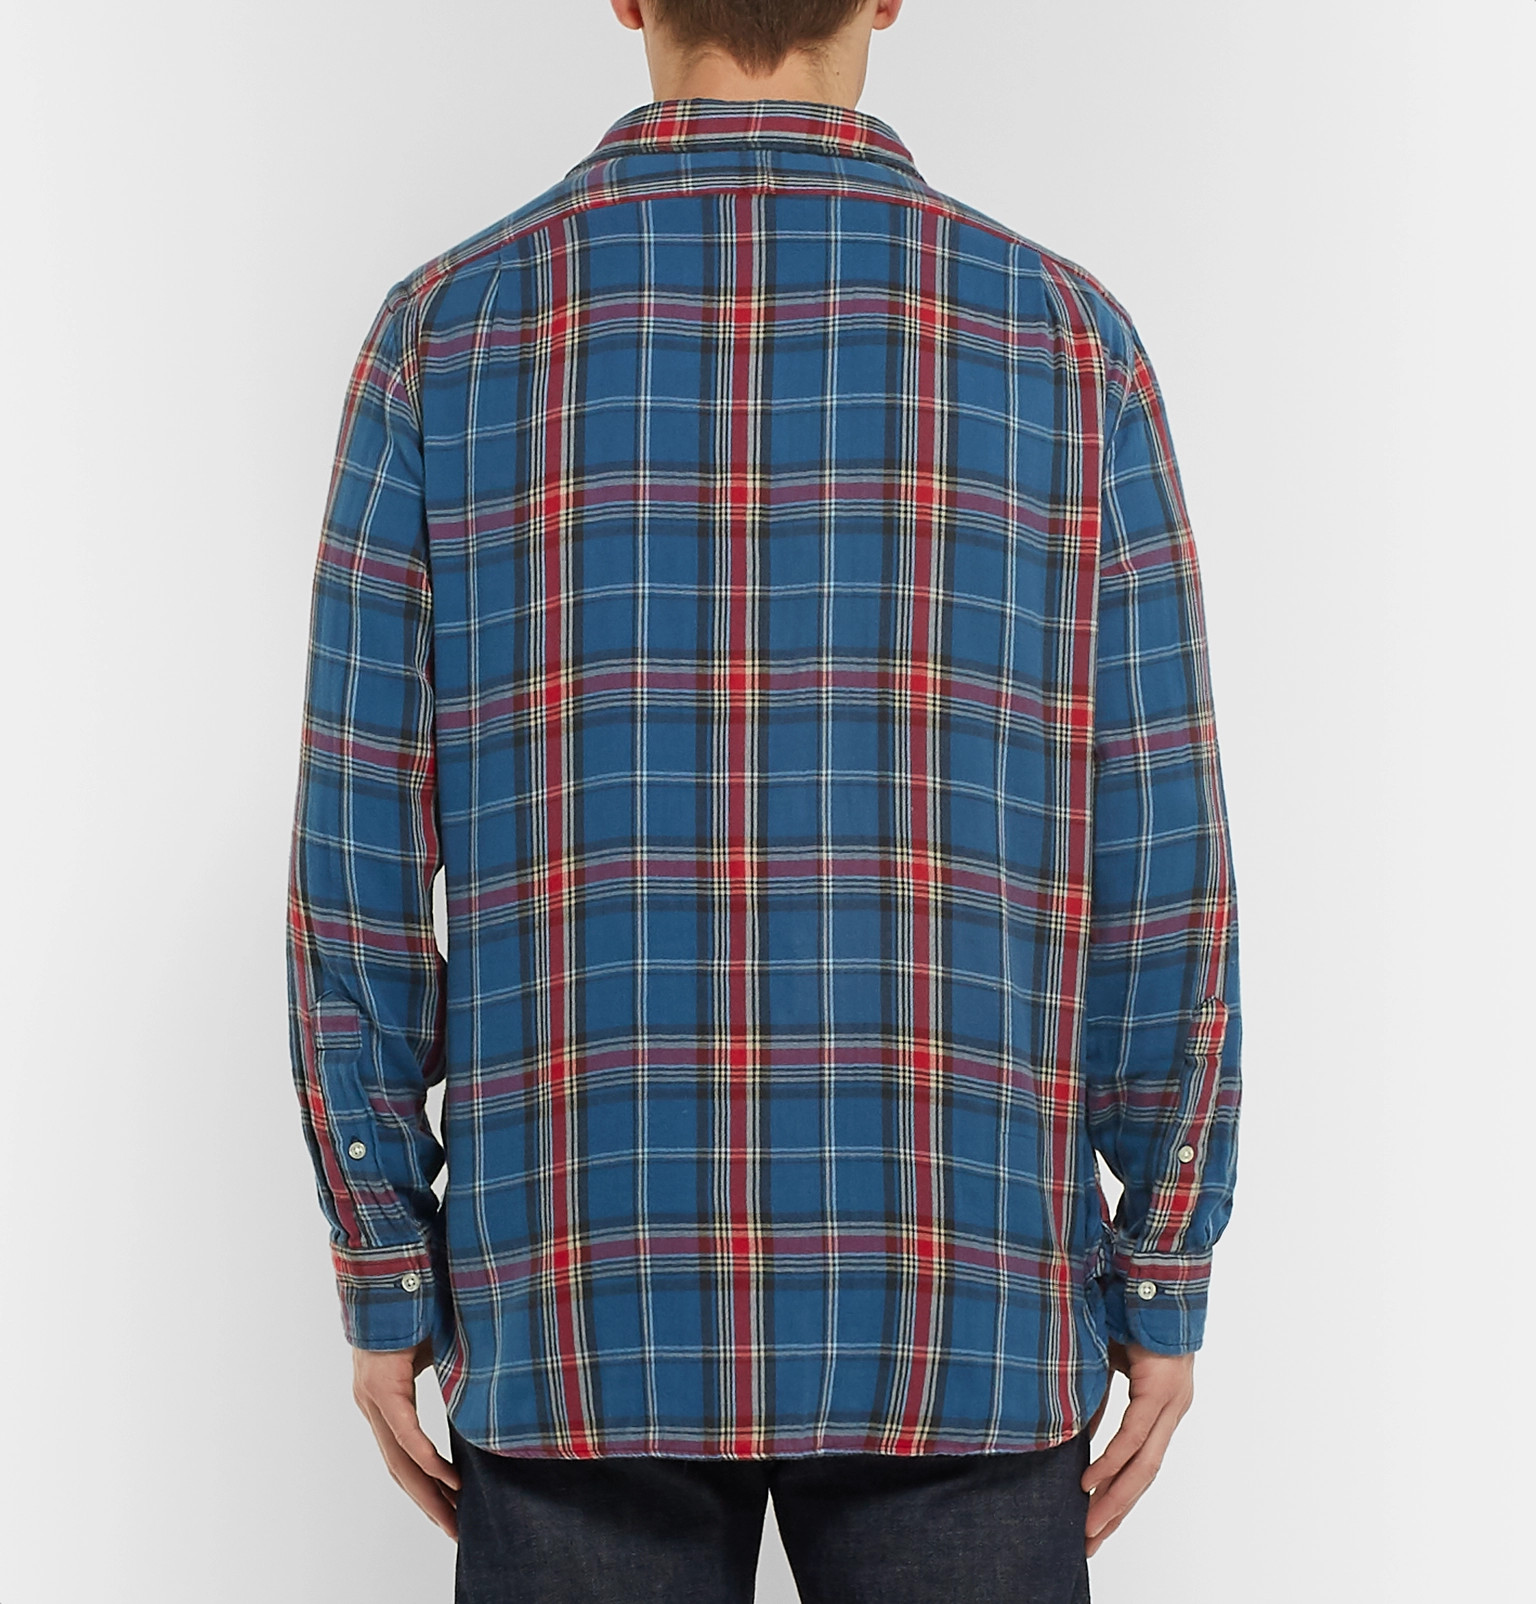 26e0f92ce Polo Ralph LaurenChecked Double-Faced Cotton-Flannel Shirt. Was £106.36Now  £45.84 / Approx. NT$1,808.6750% off. Tap to Close. 1